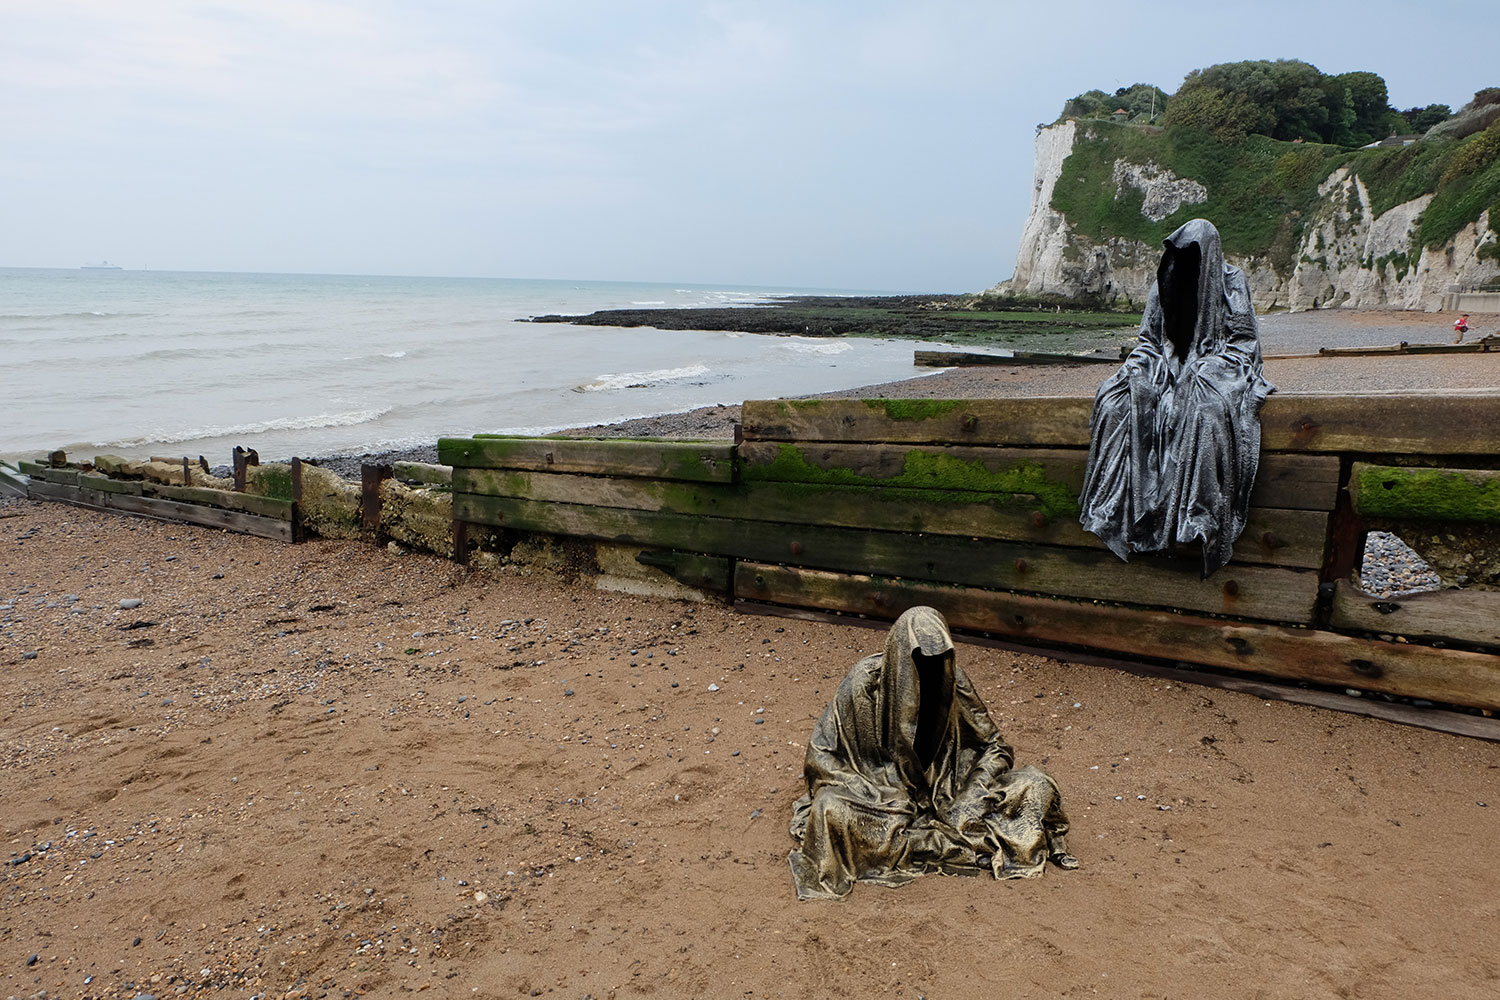 guardians-of-guardians-of-time-manfred-kili-kielnhofer-uk-england-dover-public-contemporary-art-arts-design-sculpture-6444